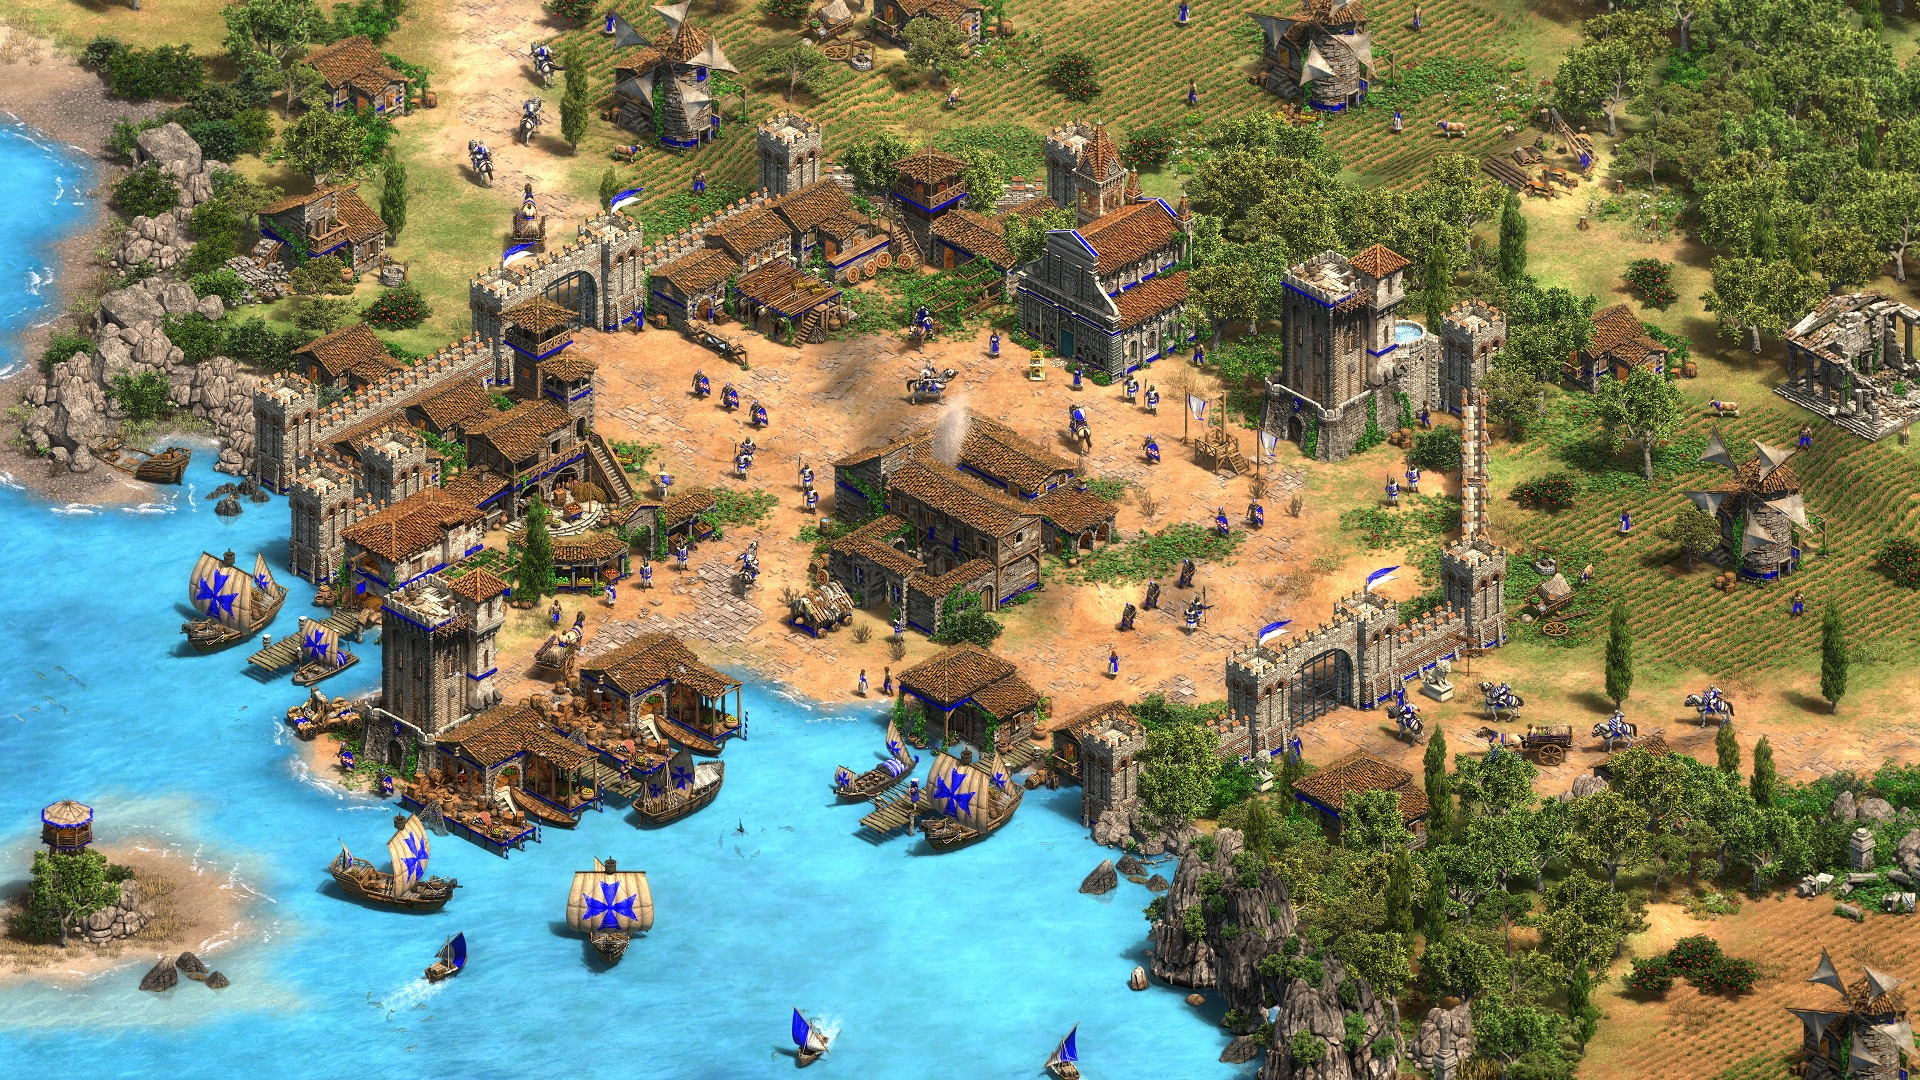 Age of Empires II: Definitive Edition - Lords of the West (PC) - Steam Key - GLOBAL - 4